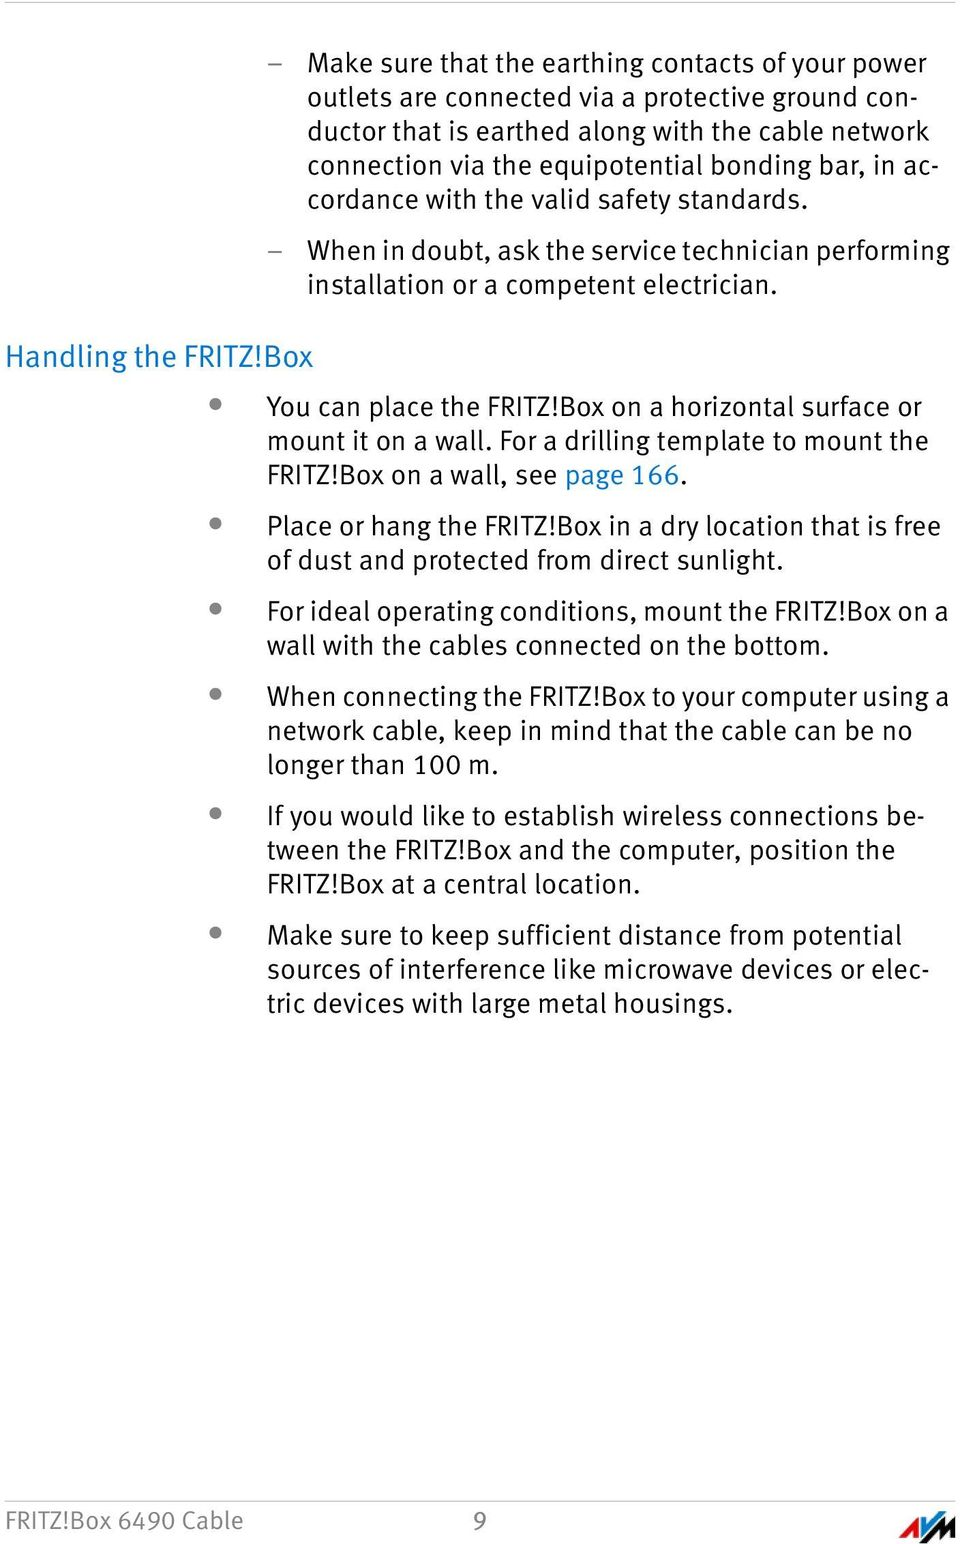 Fritzbox 6490 cable reset